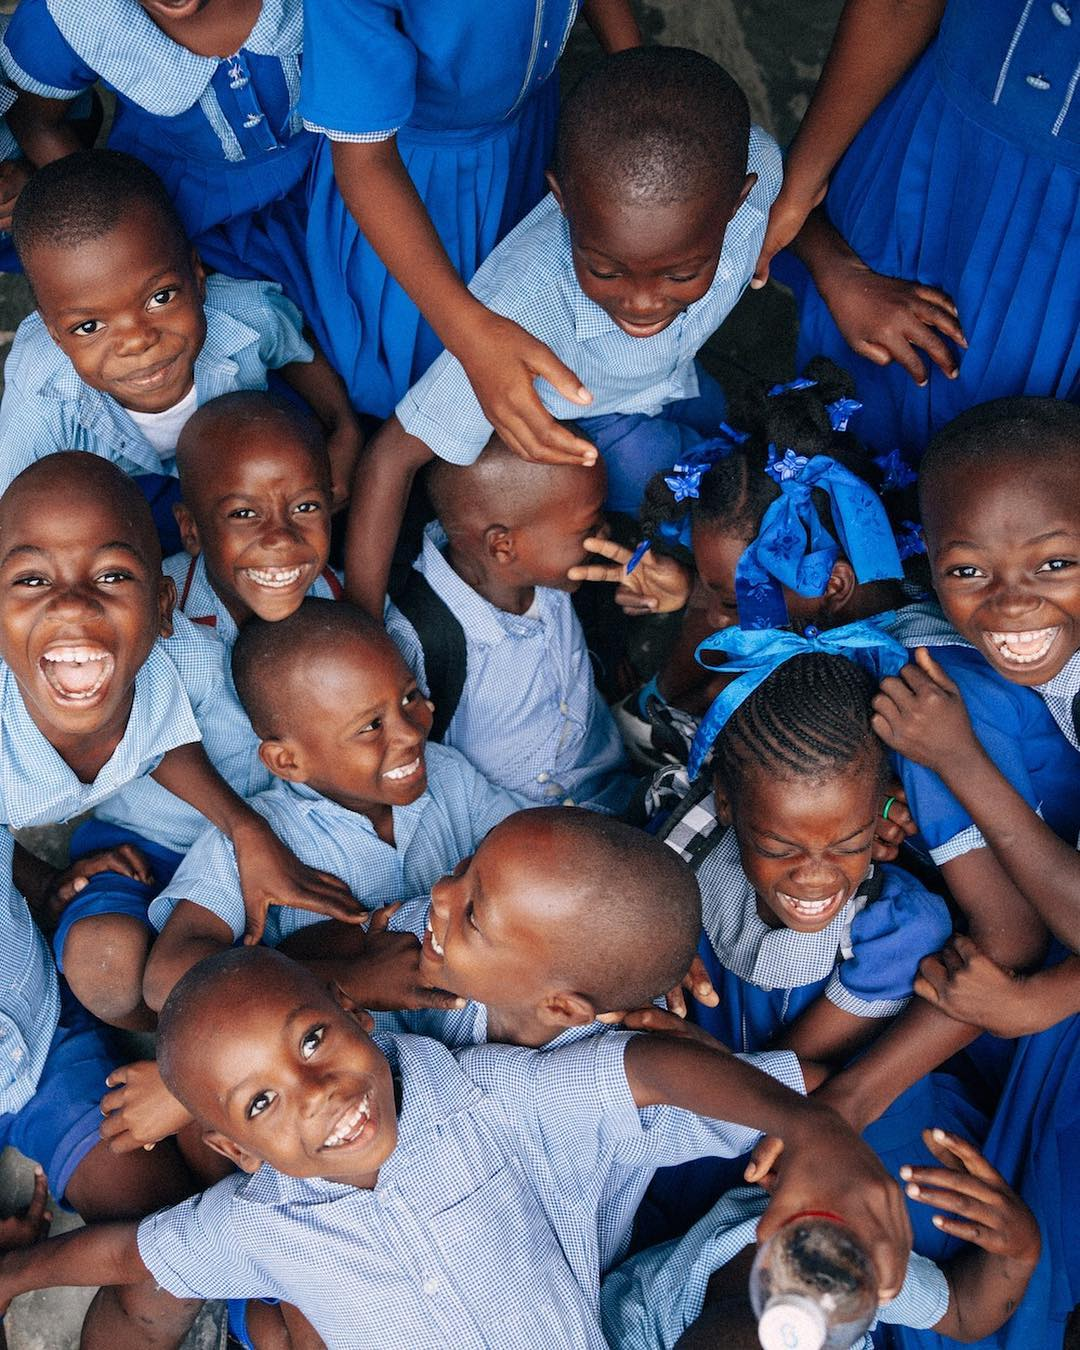 Children are #haiti's most precious resource! one of our top priorities over the past two days was spreading the word about #hurricaneirma. we made contact with our 24 school partners who are connected to 7,300 children across the greater south of haiti. our network of community health workers are equipped with safety messages, basic first aid & cpr training, and are ready to mobilize if the time comes. our thoughts are with the children and their families across the caribbean who have been affected already, and we are hoping for the best for usa families awaiting the storm. photo by: @scottsimock